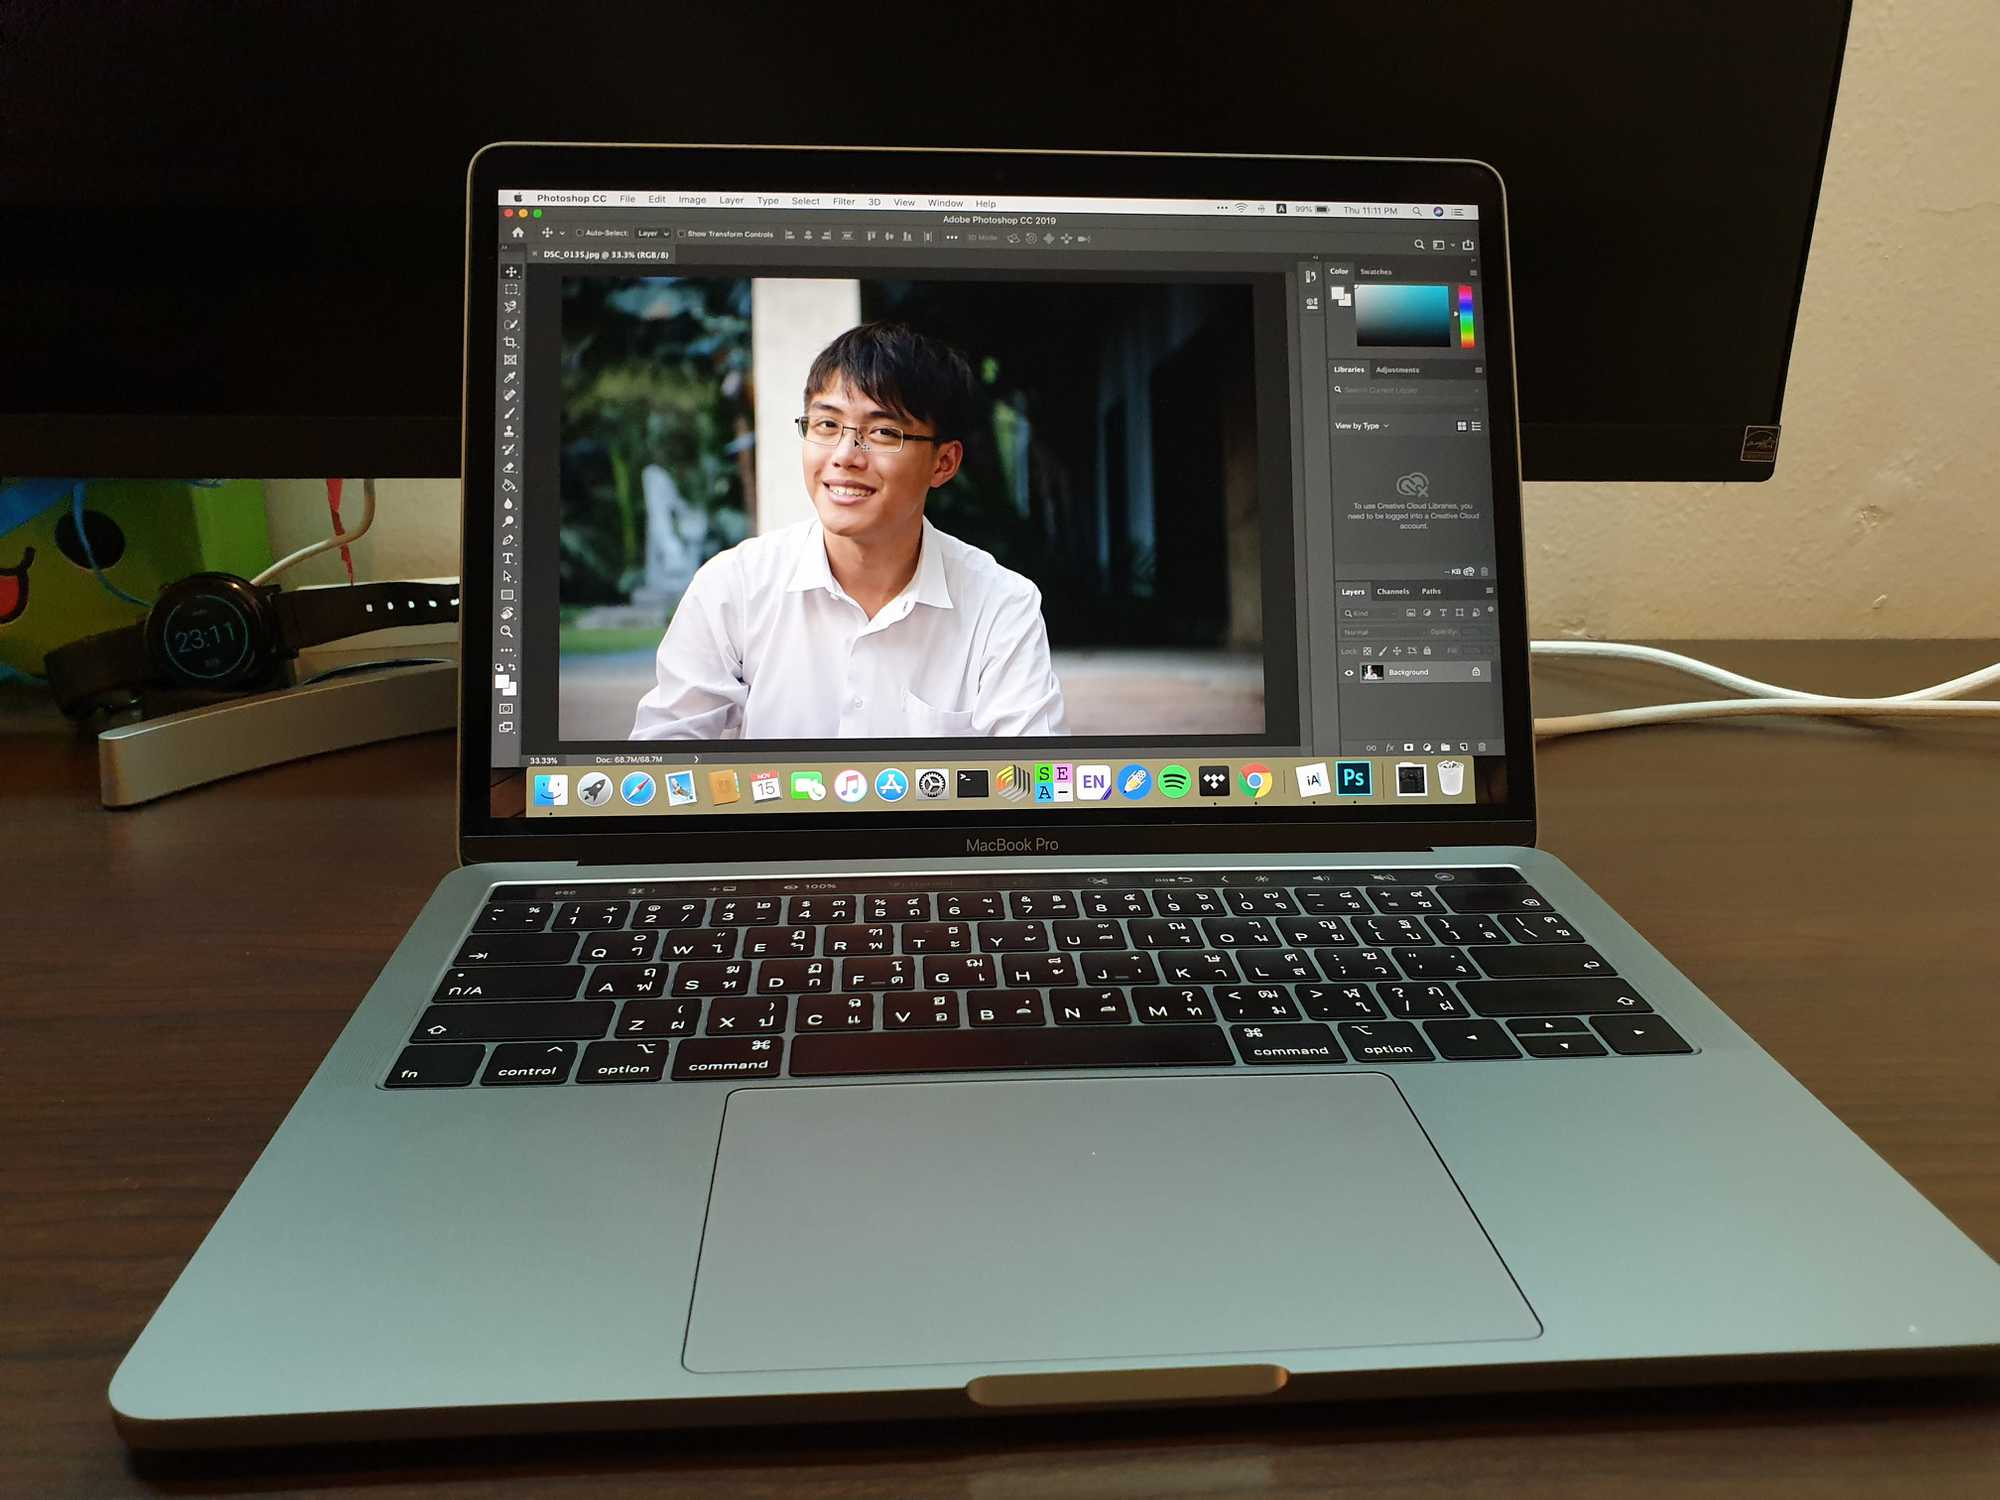 MacBook Pro 13-inch 2018 running Photoshop